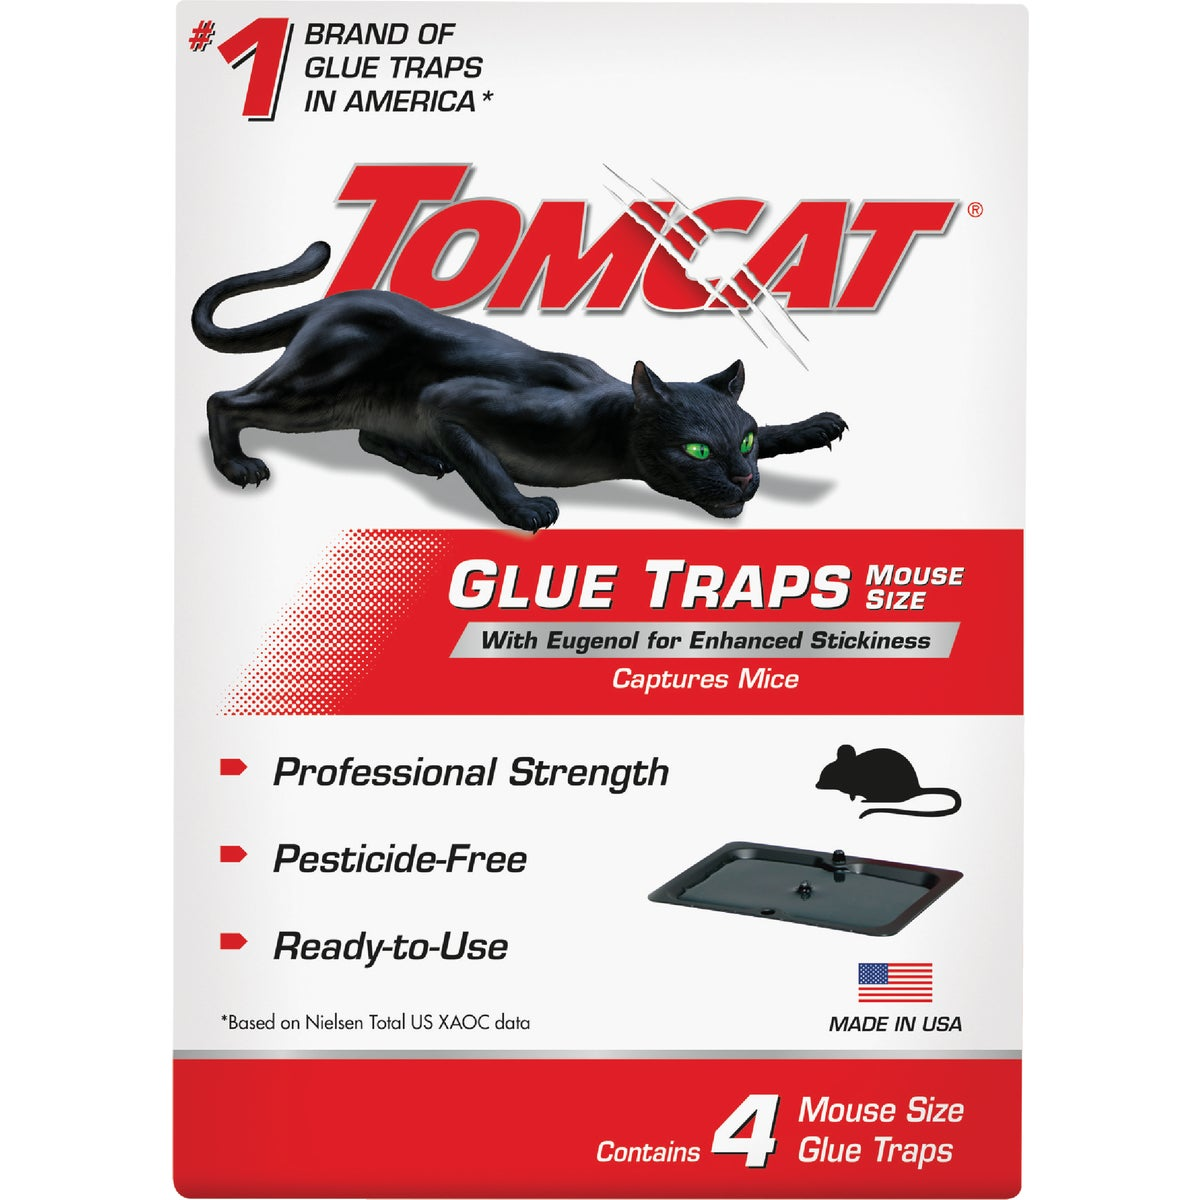 4PK MOUSE GLUE TRAP - BL32413 by Motomco Ltd